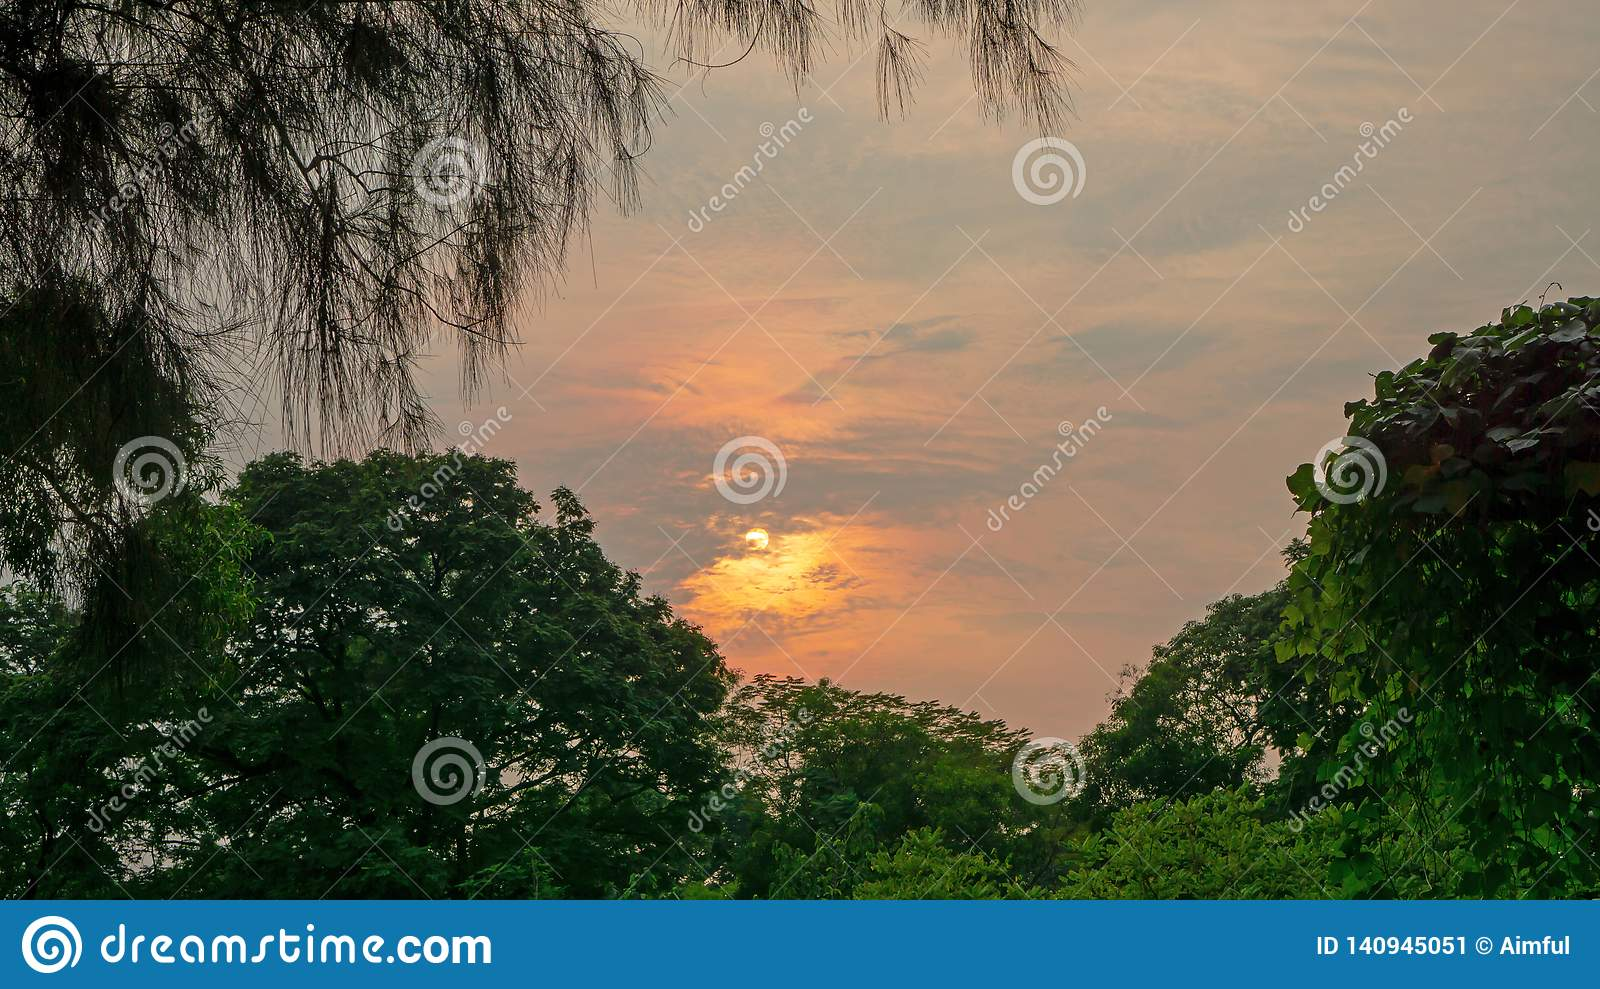 Beautiful scenery sunset with glowing orange light painted on cloudy sky become to twilight dawn above the green leaves trees